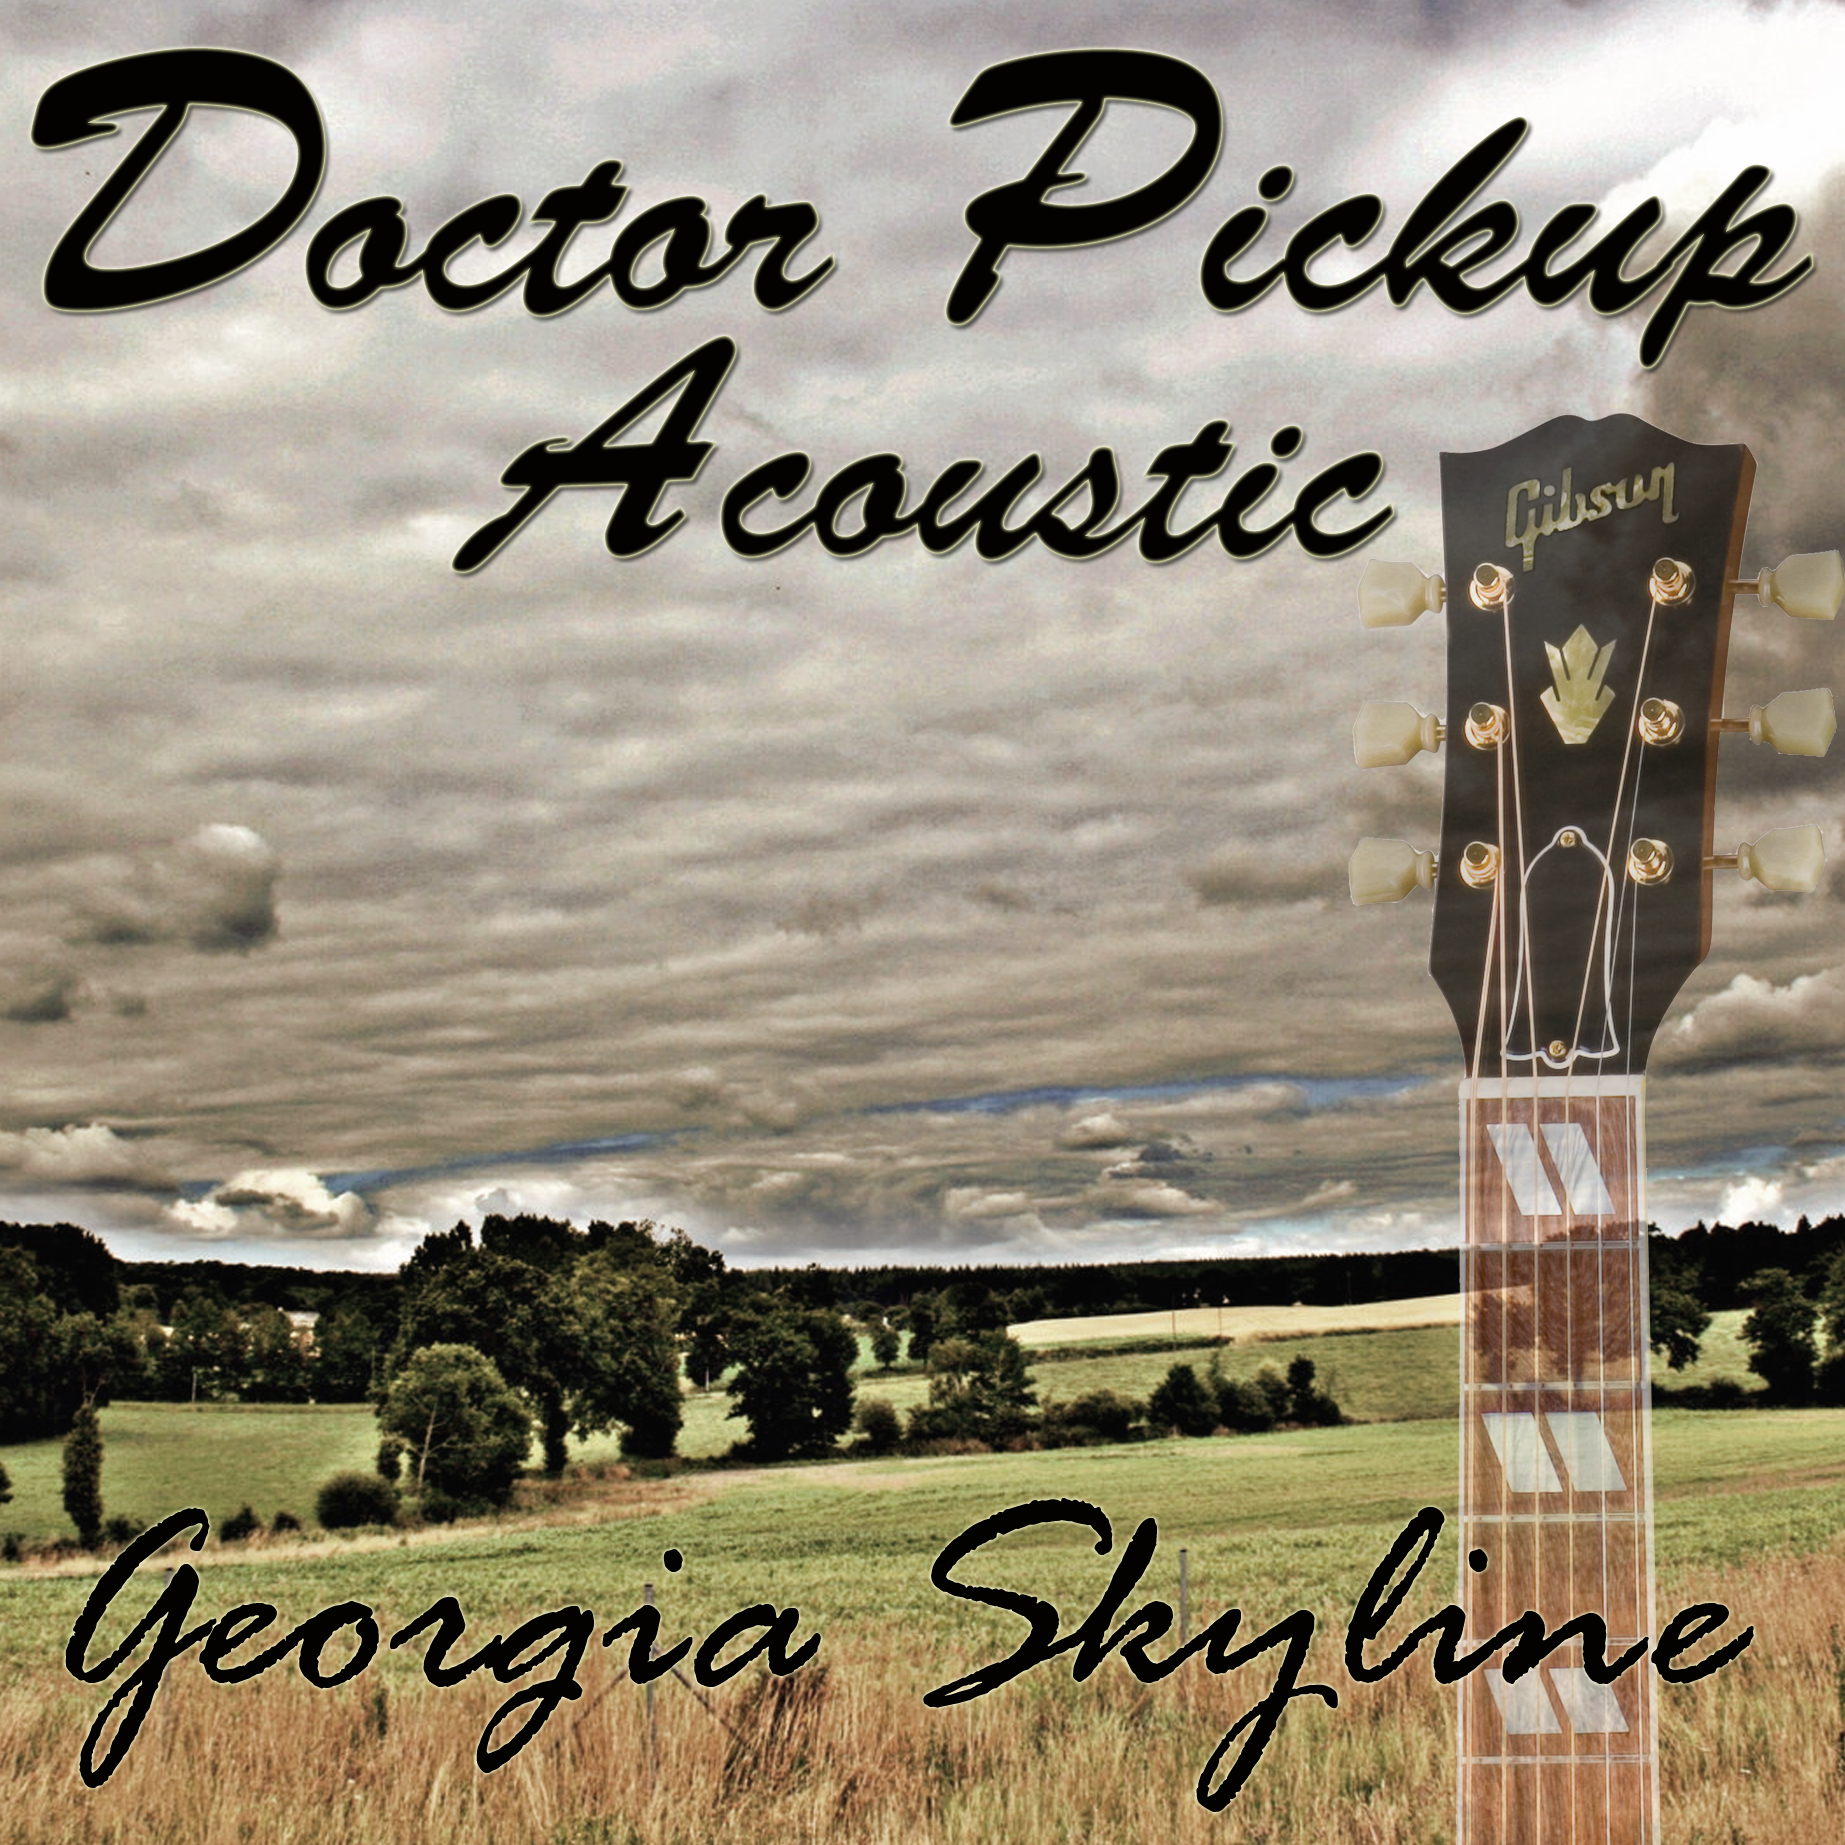 Dr Pickup CD Georgia Skyline